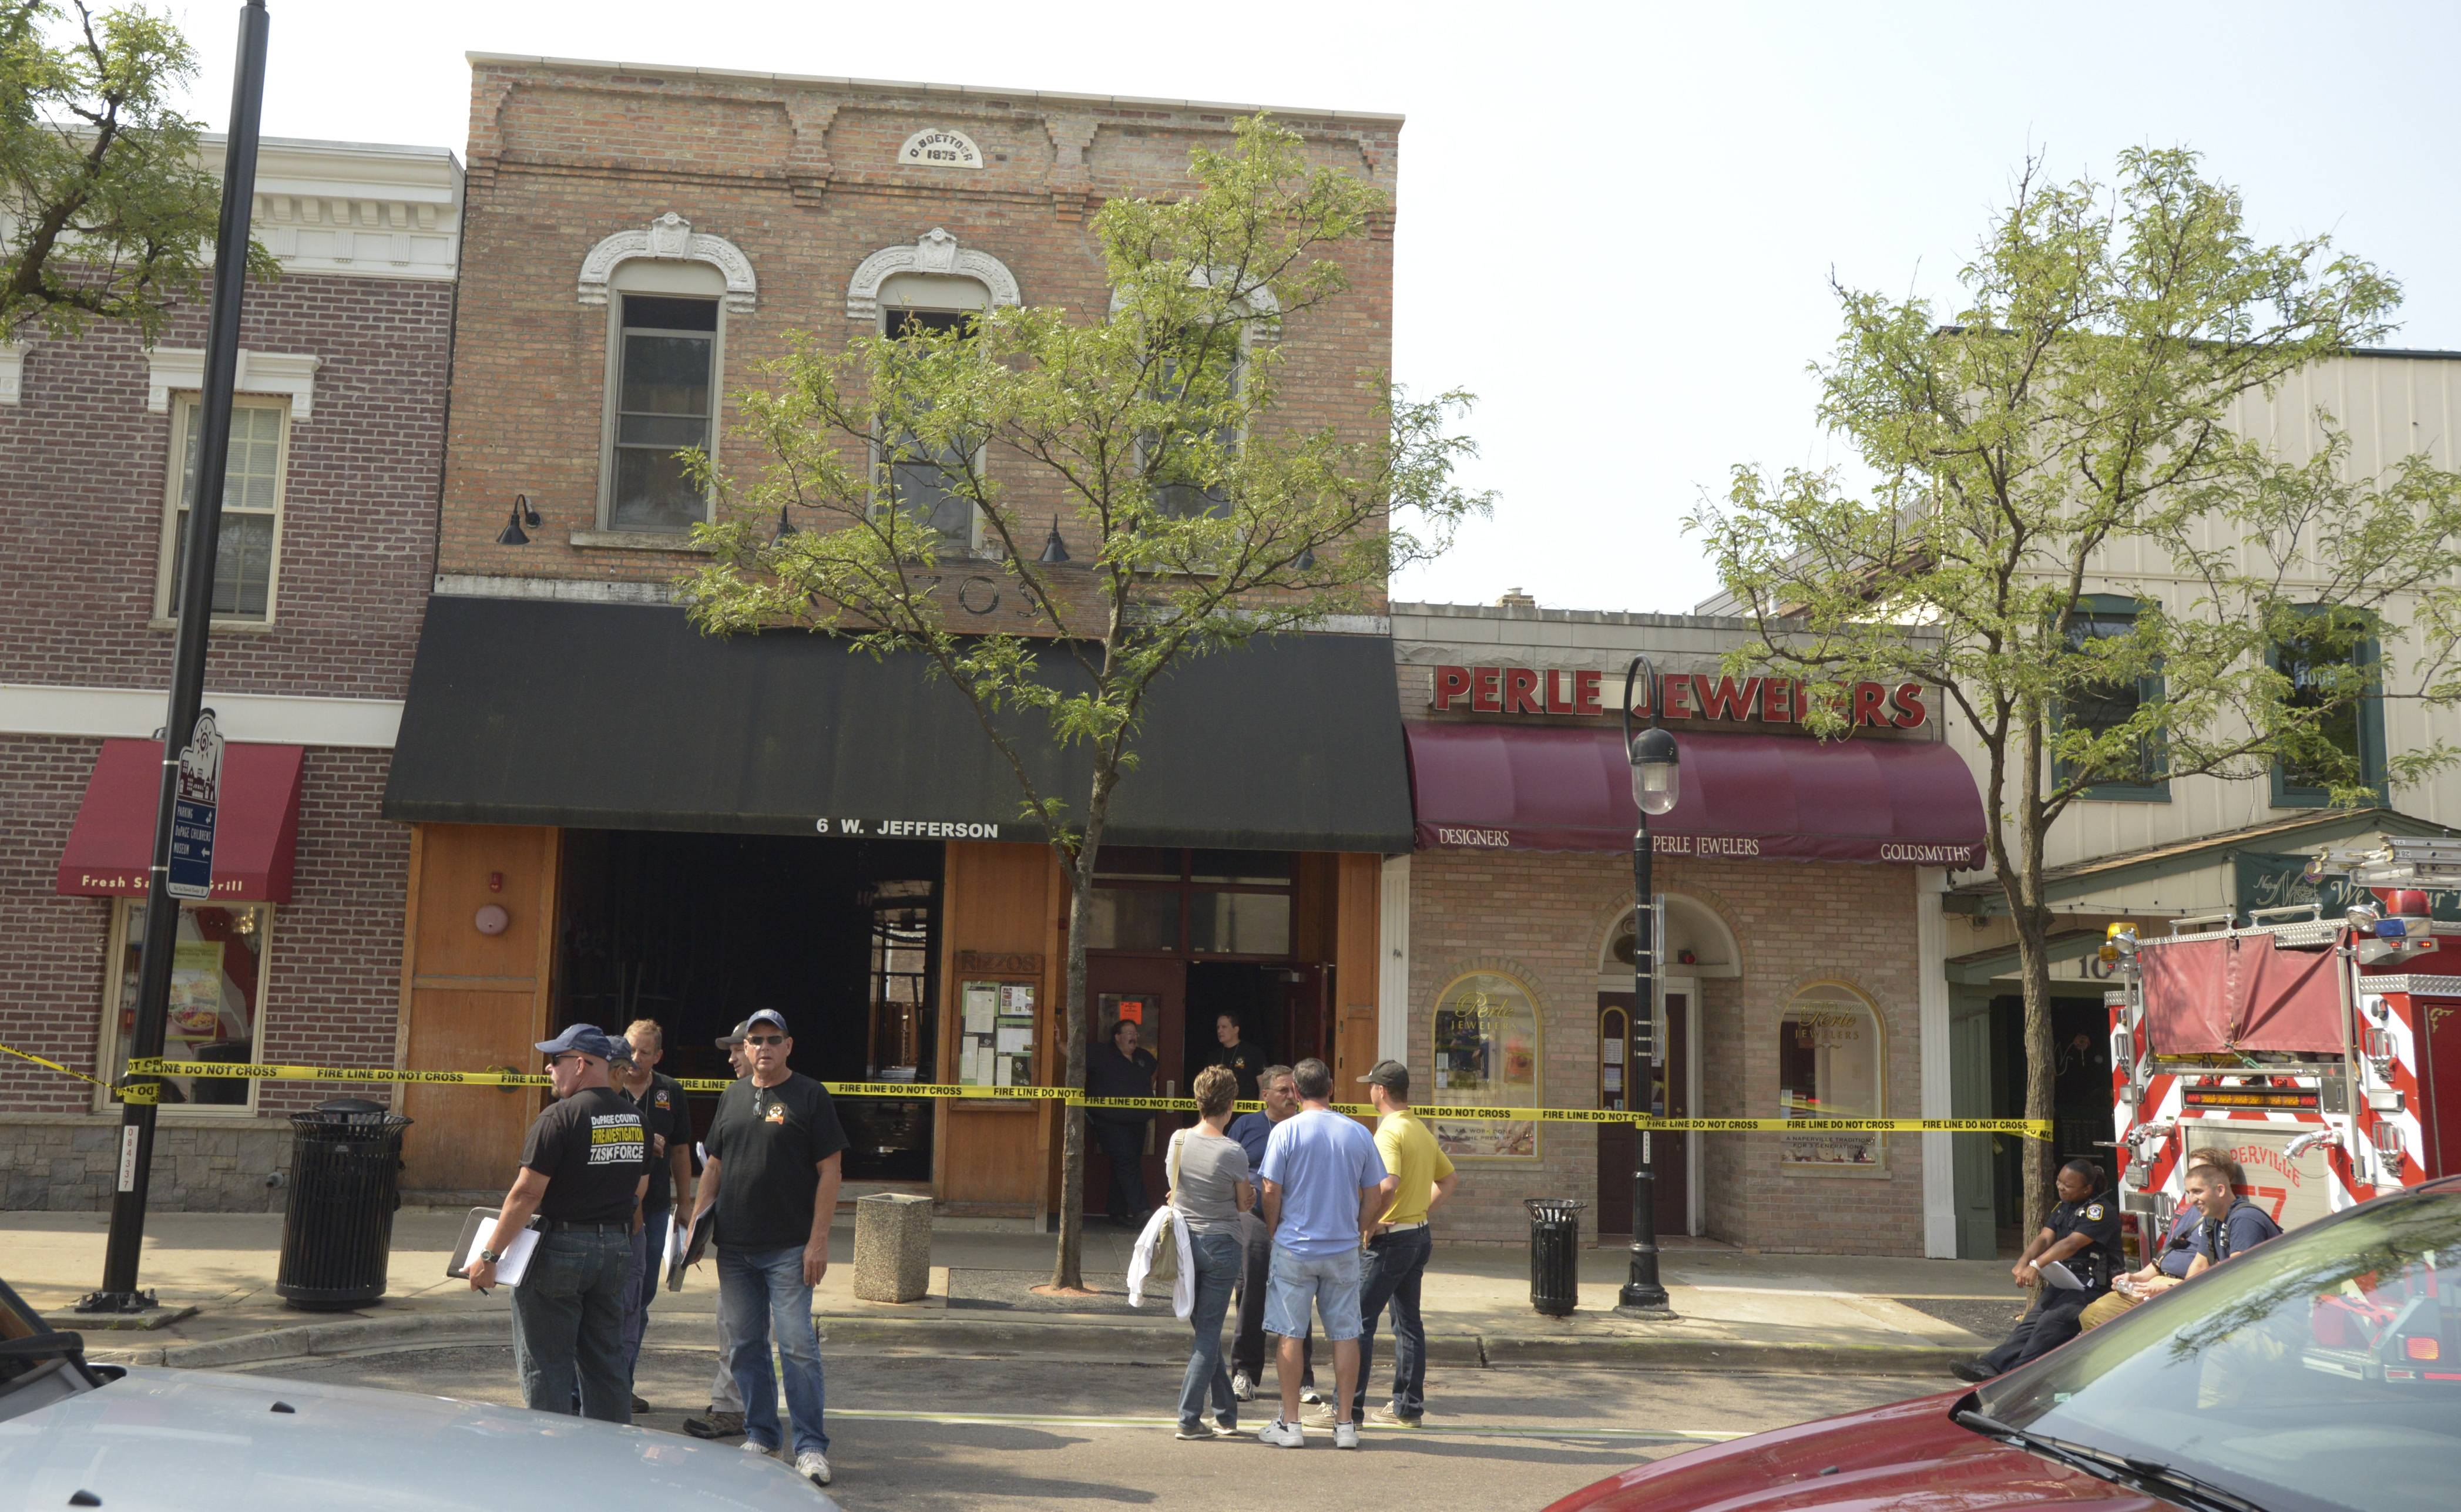 Rizzo's in downtown Naperville remains uninhabitable as investigators work to determine the cause of a fire there Sunday morning that caused $200,000 in damage. The fire started on the roof or back porch then spread inside, authorities said.